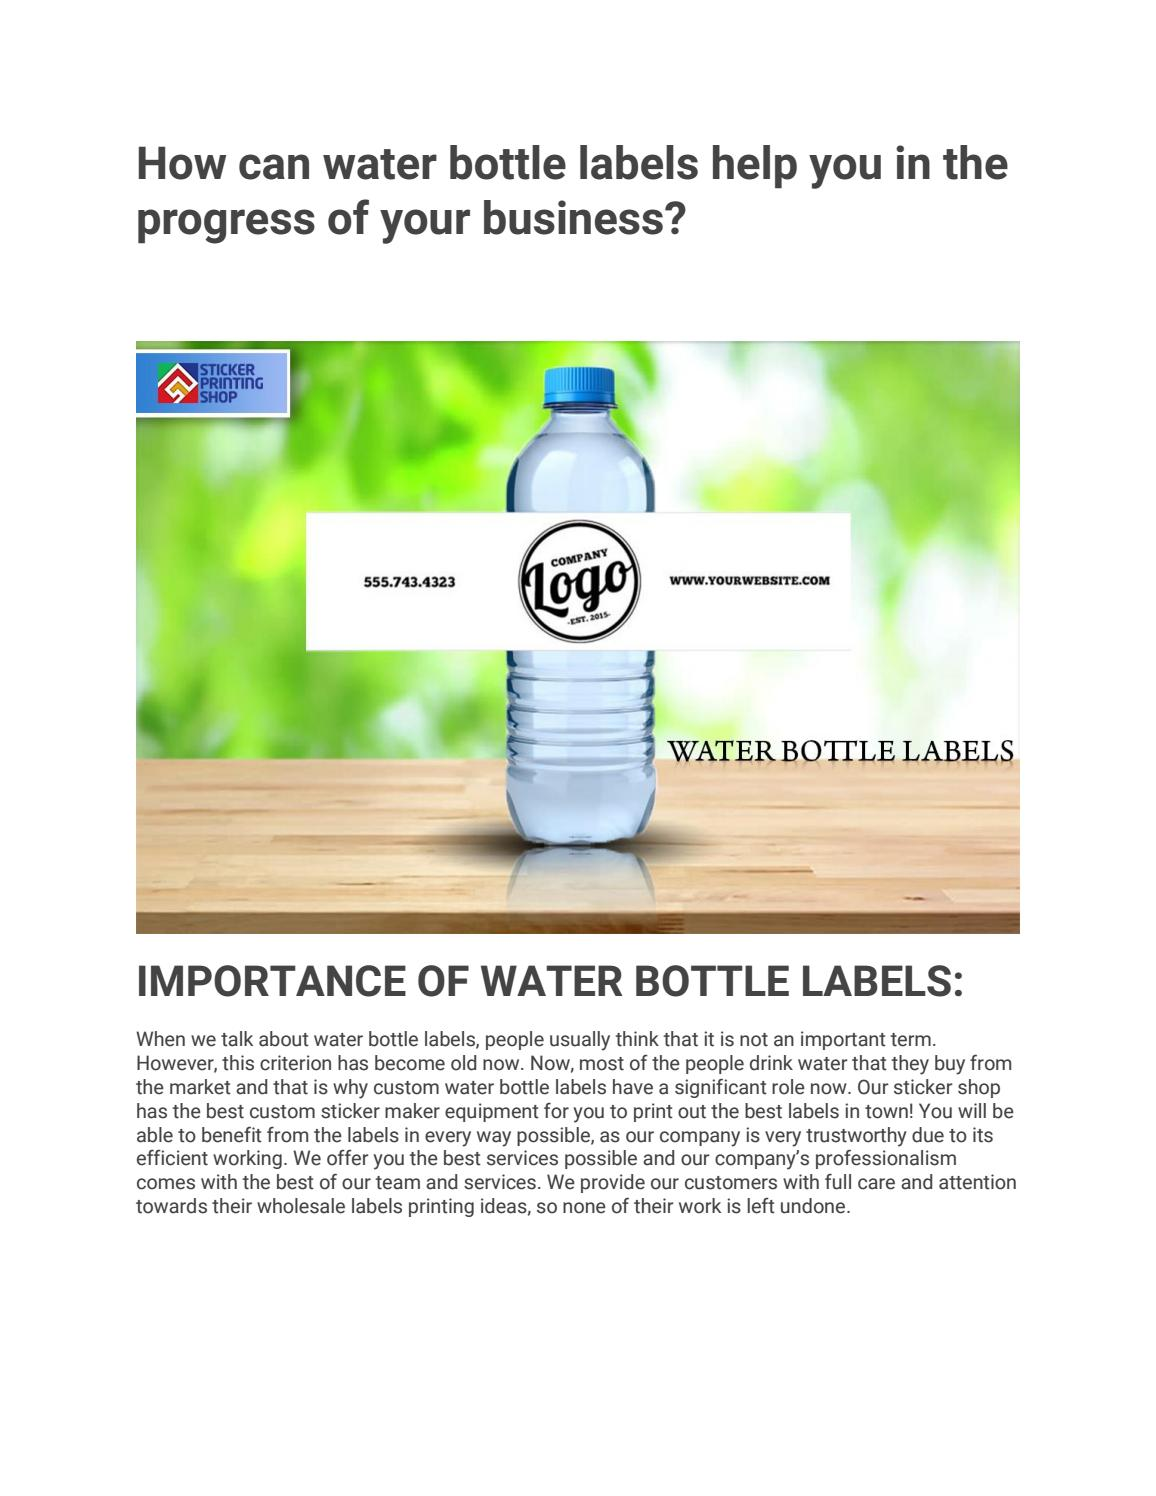 How can water bottle labels help you in the progress of your